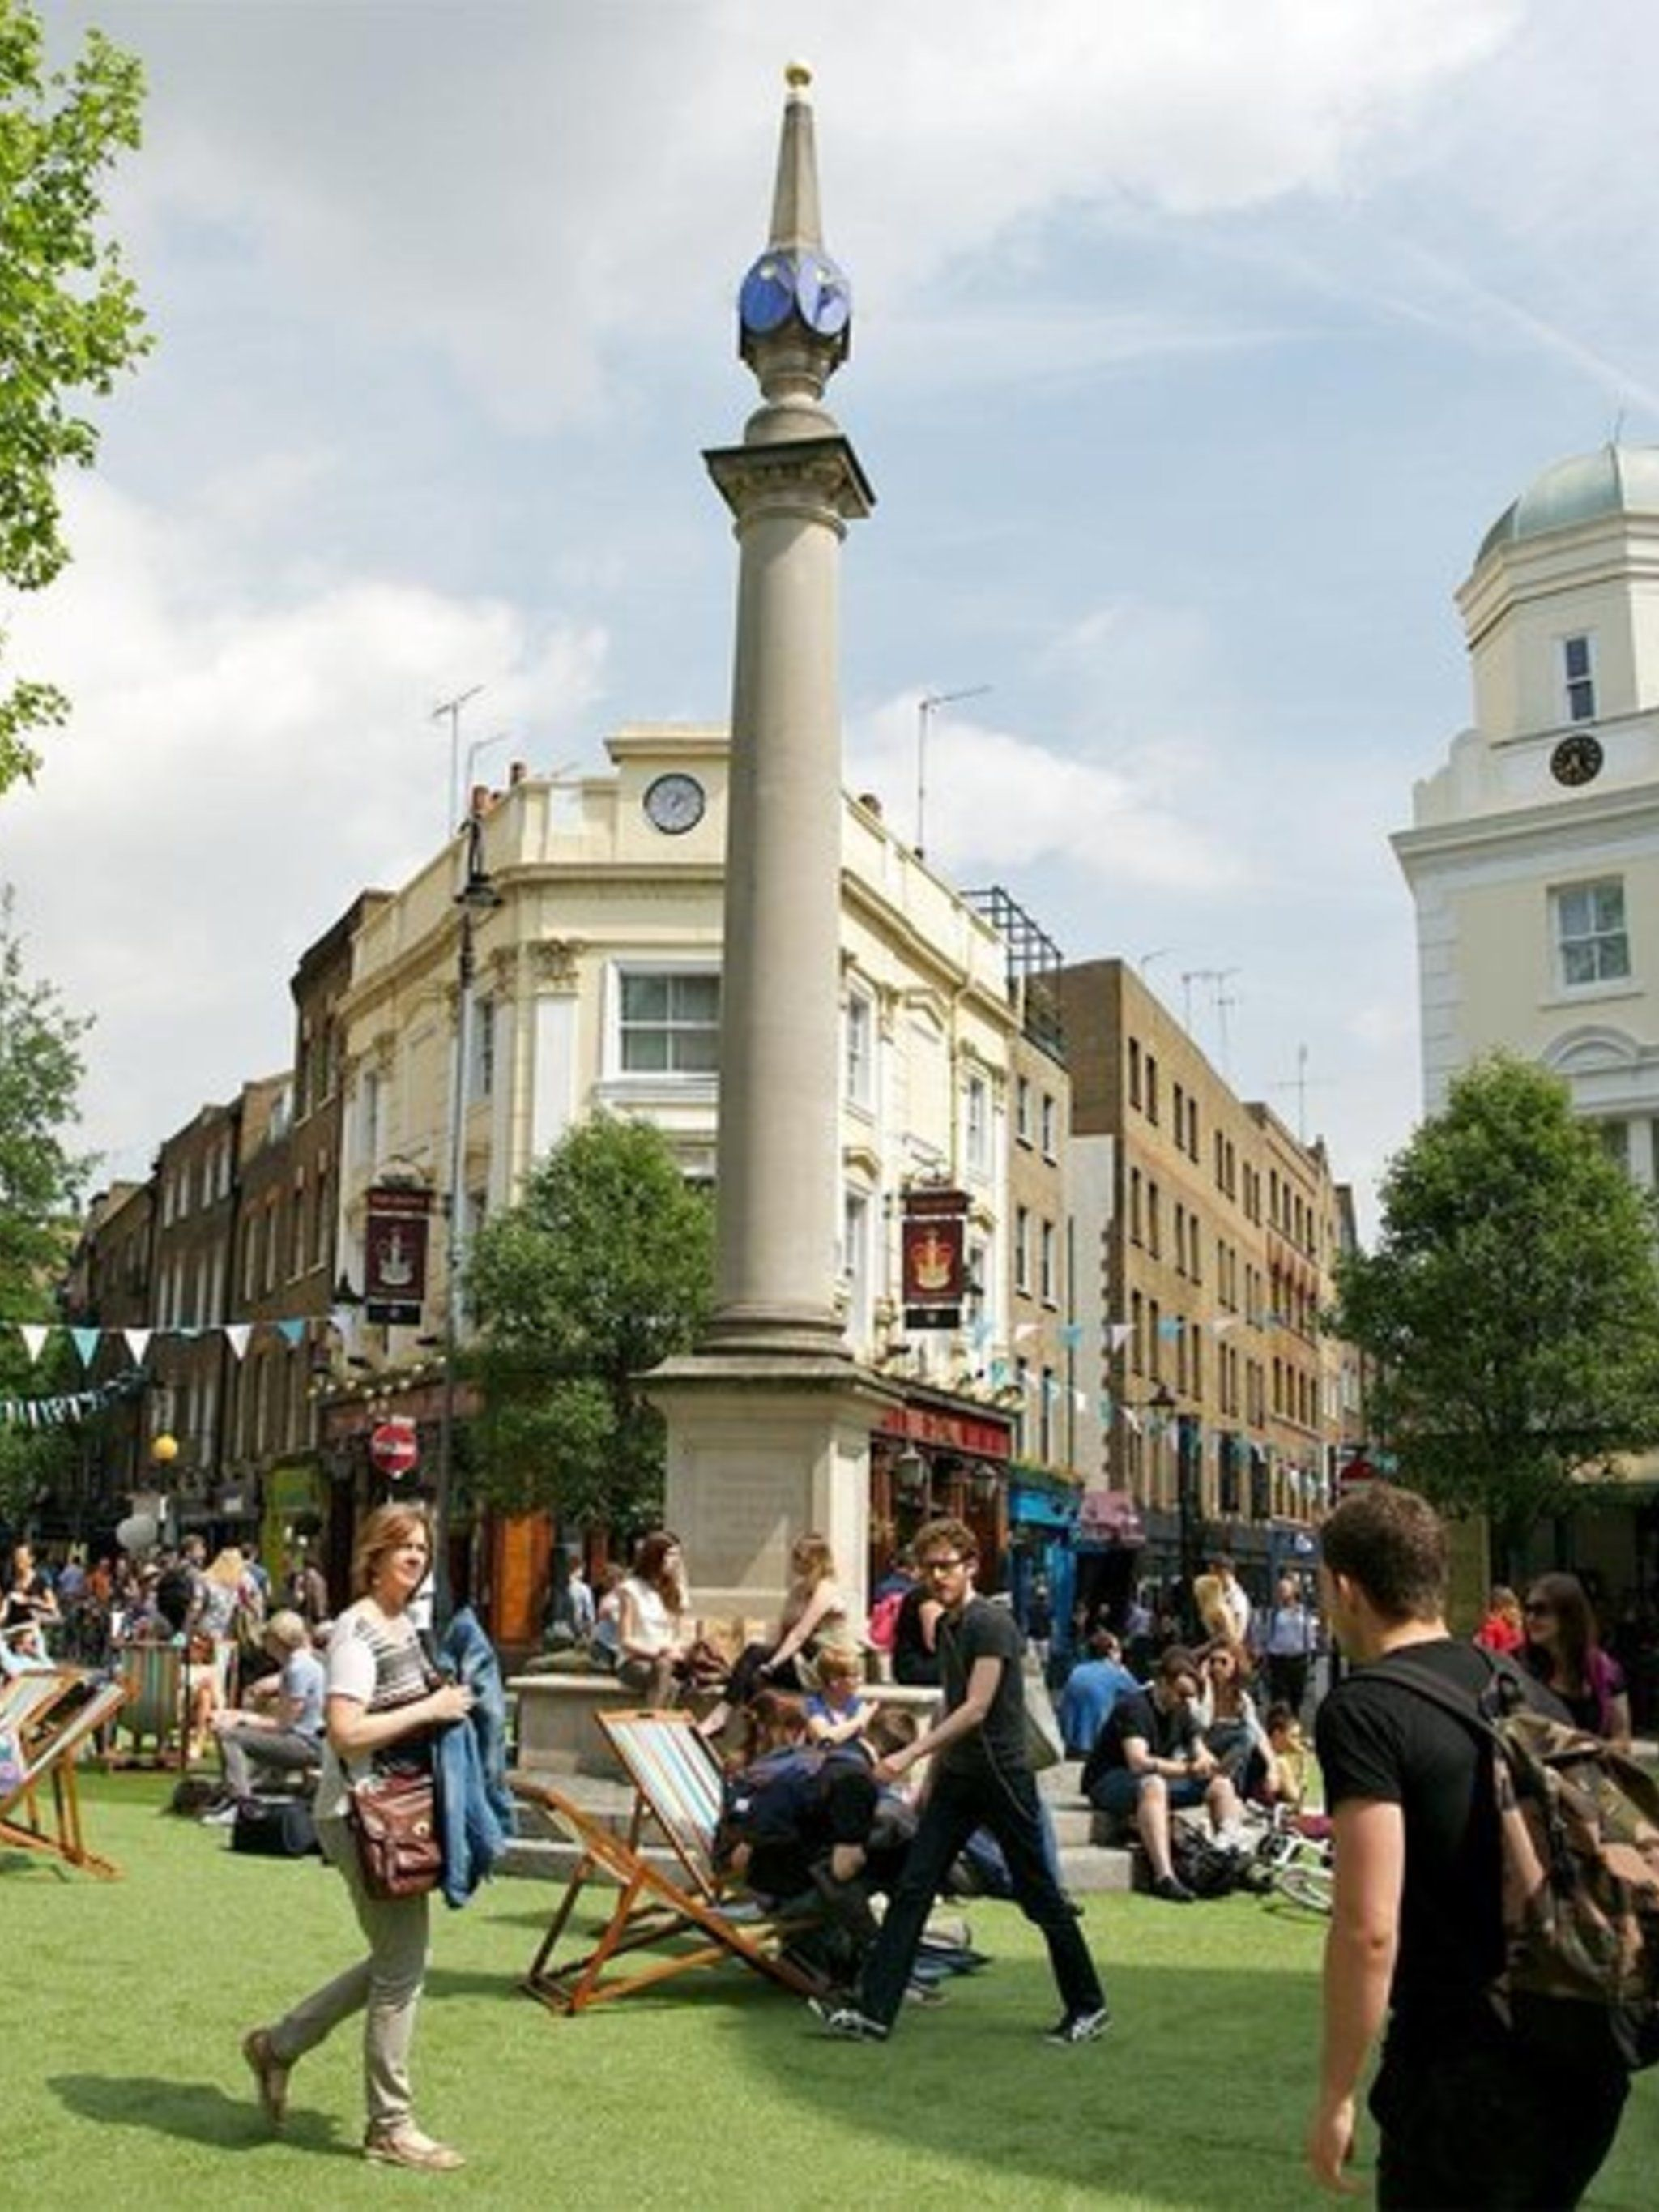 SHOPPING: Seven Dials Spotlight  This Saturday there will be a free open-air culture festival right in the heart of London.  There will be live entertainment hosted by Rick Edwards, lawn and deck chairs to recline on, and in-store and outdoor activities i